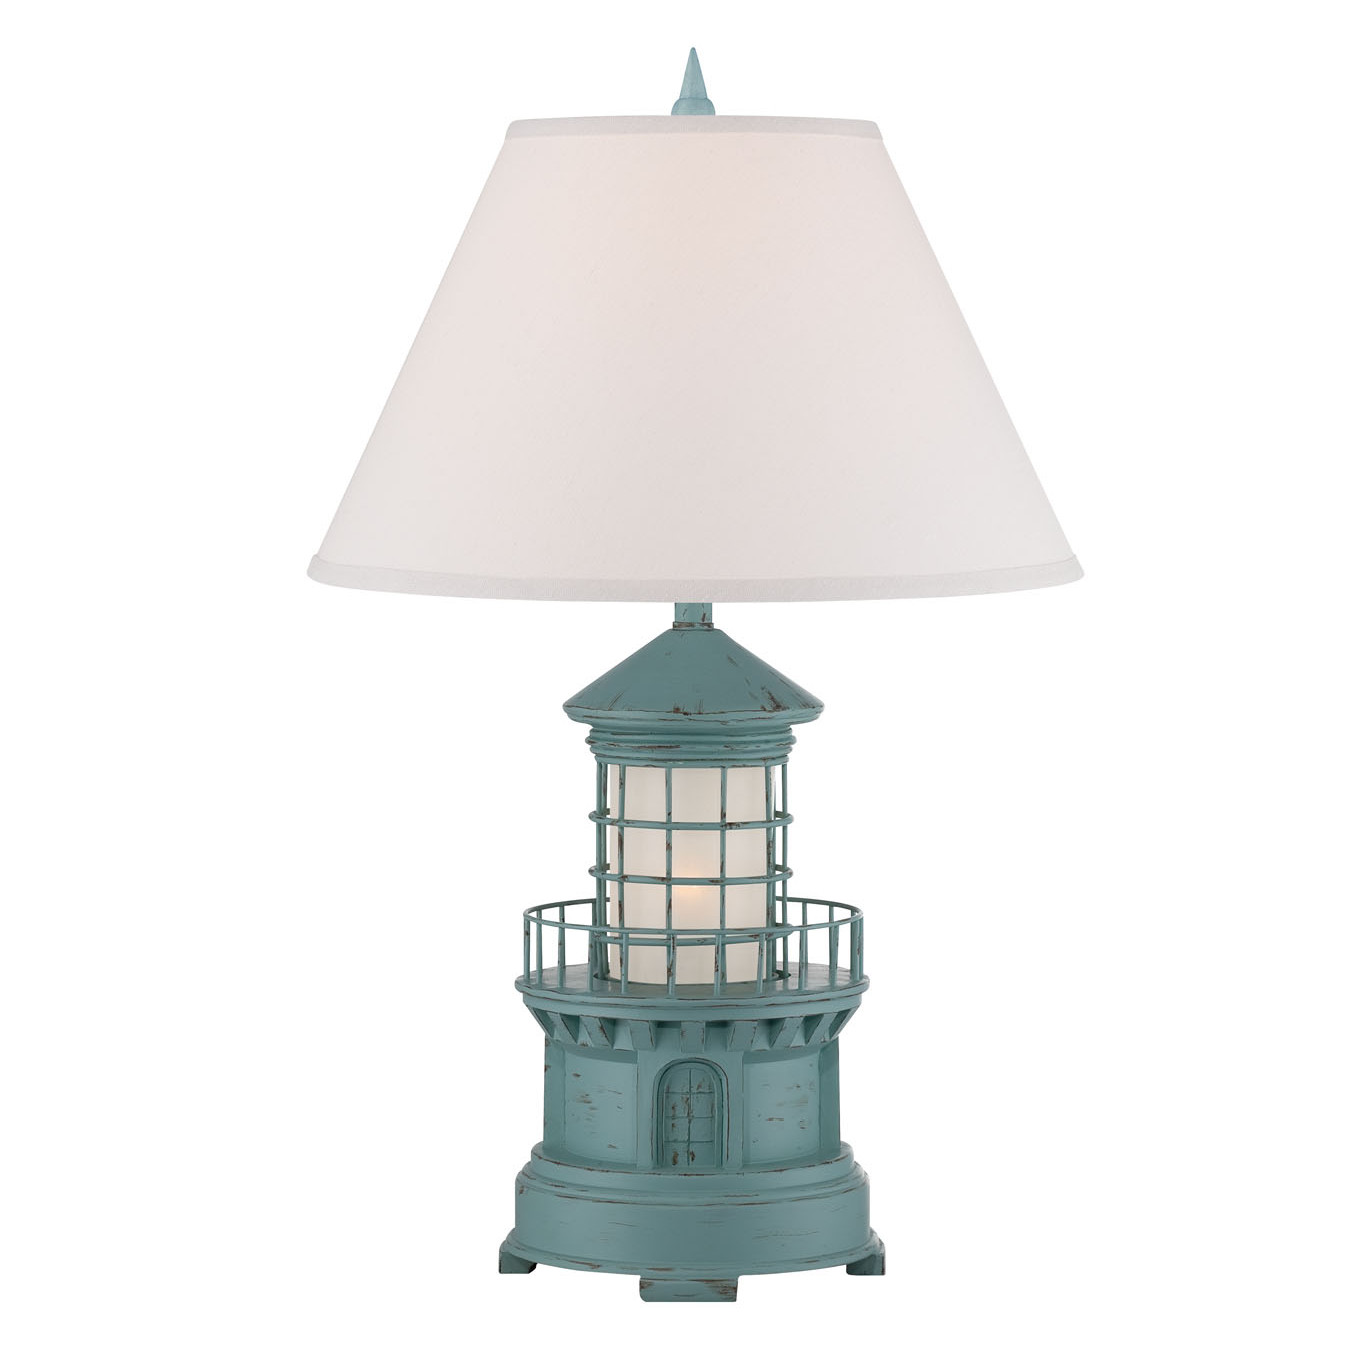 Cottage Lighthouse Lamp 3 Colors